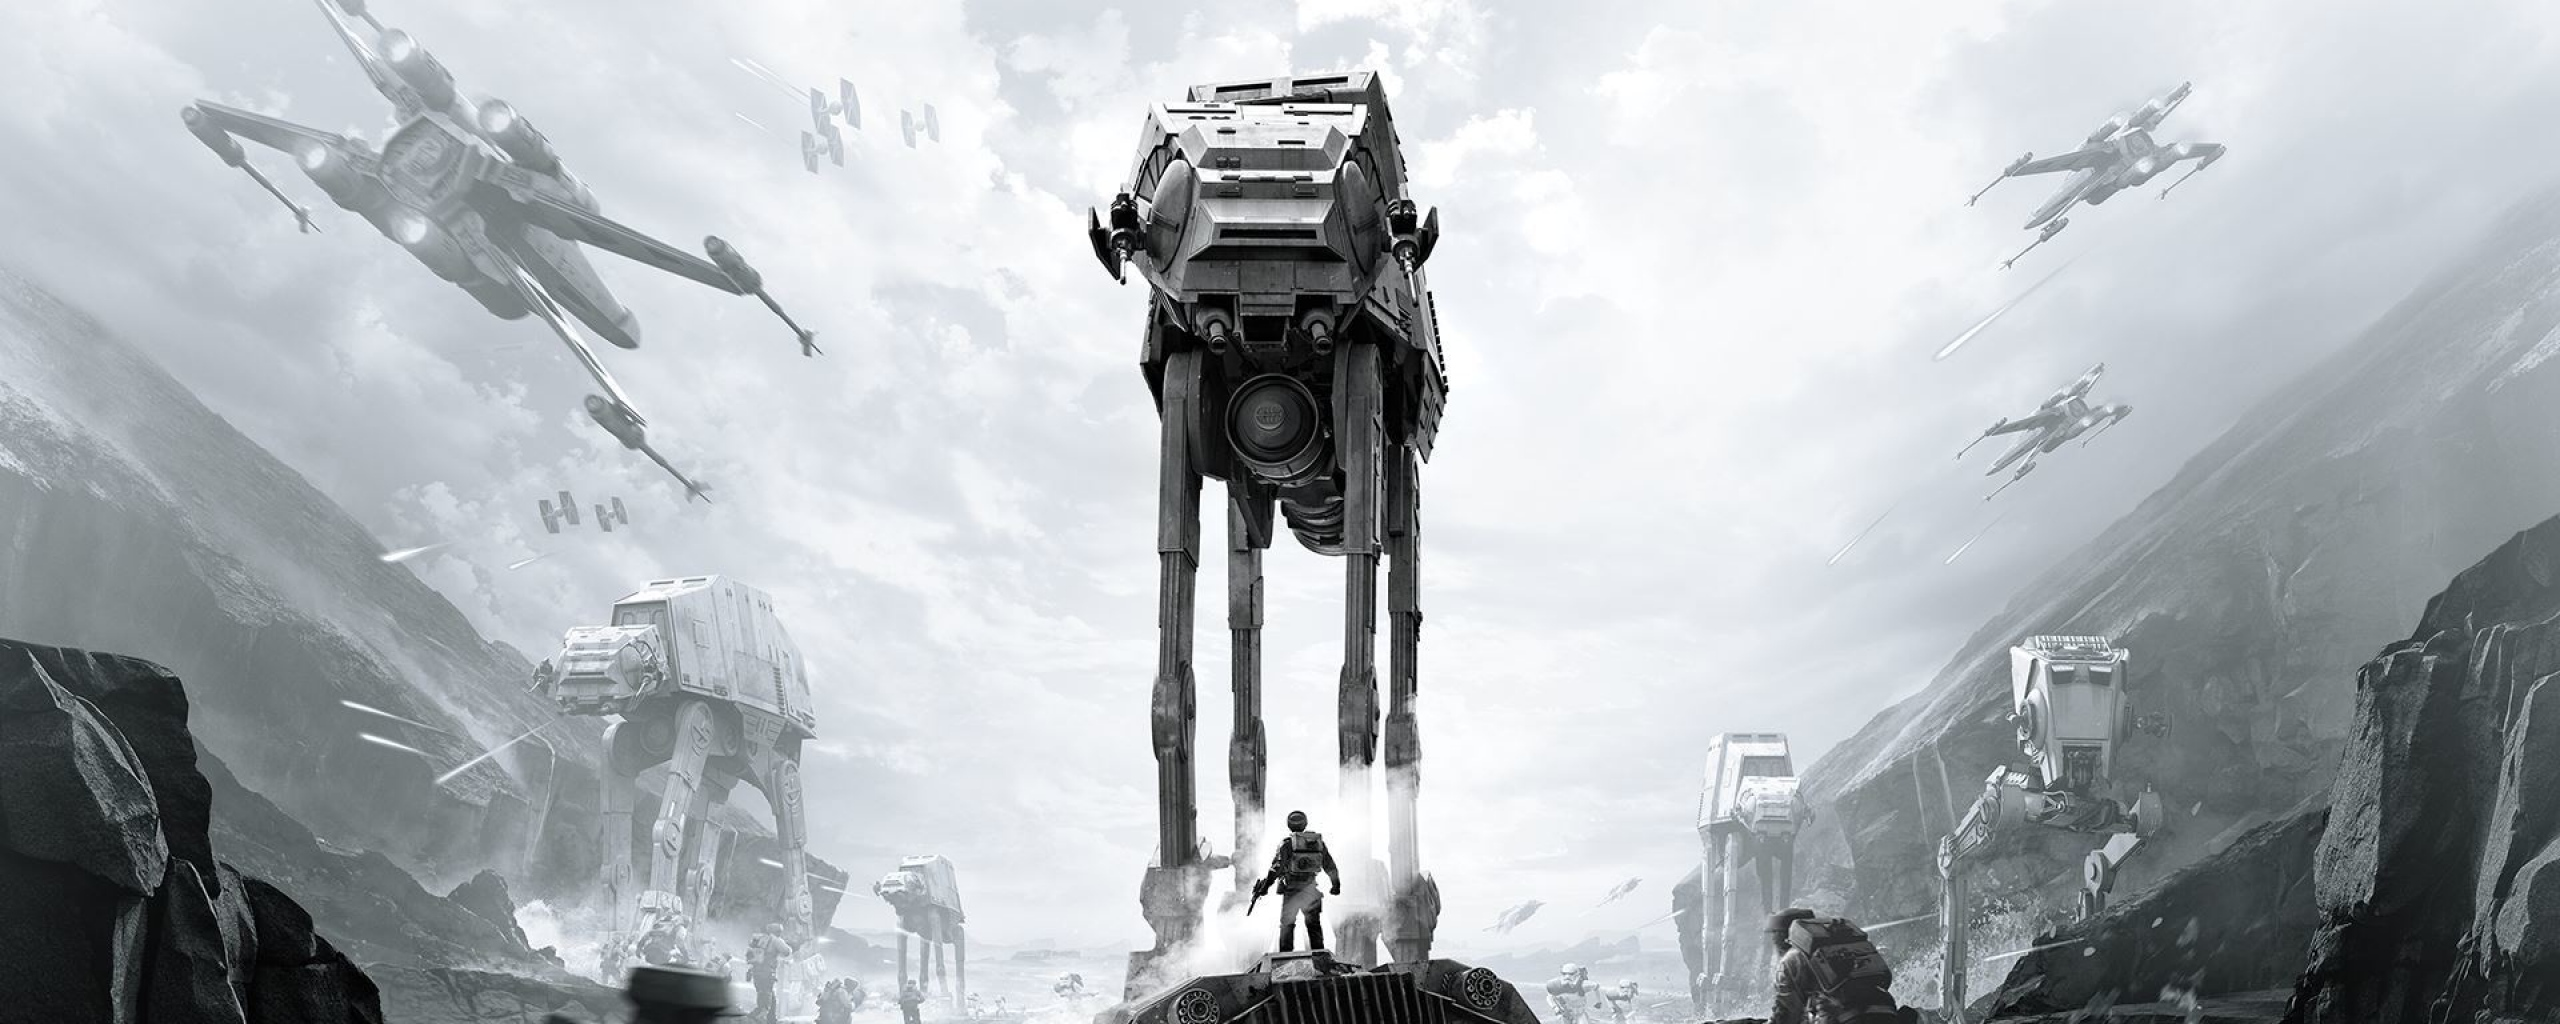 Star Wars Dual Monitor Wallpaper Hd Pics Tar Battlefront Star